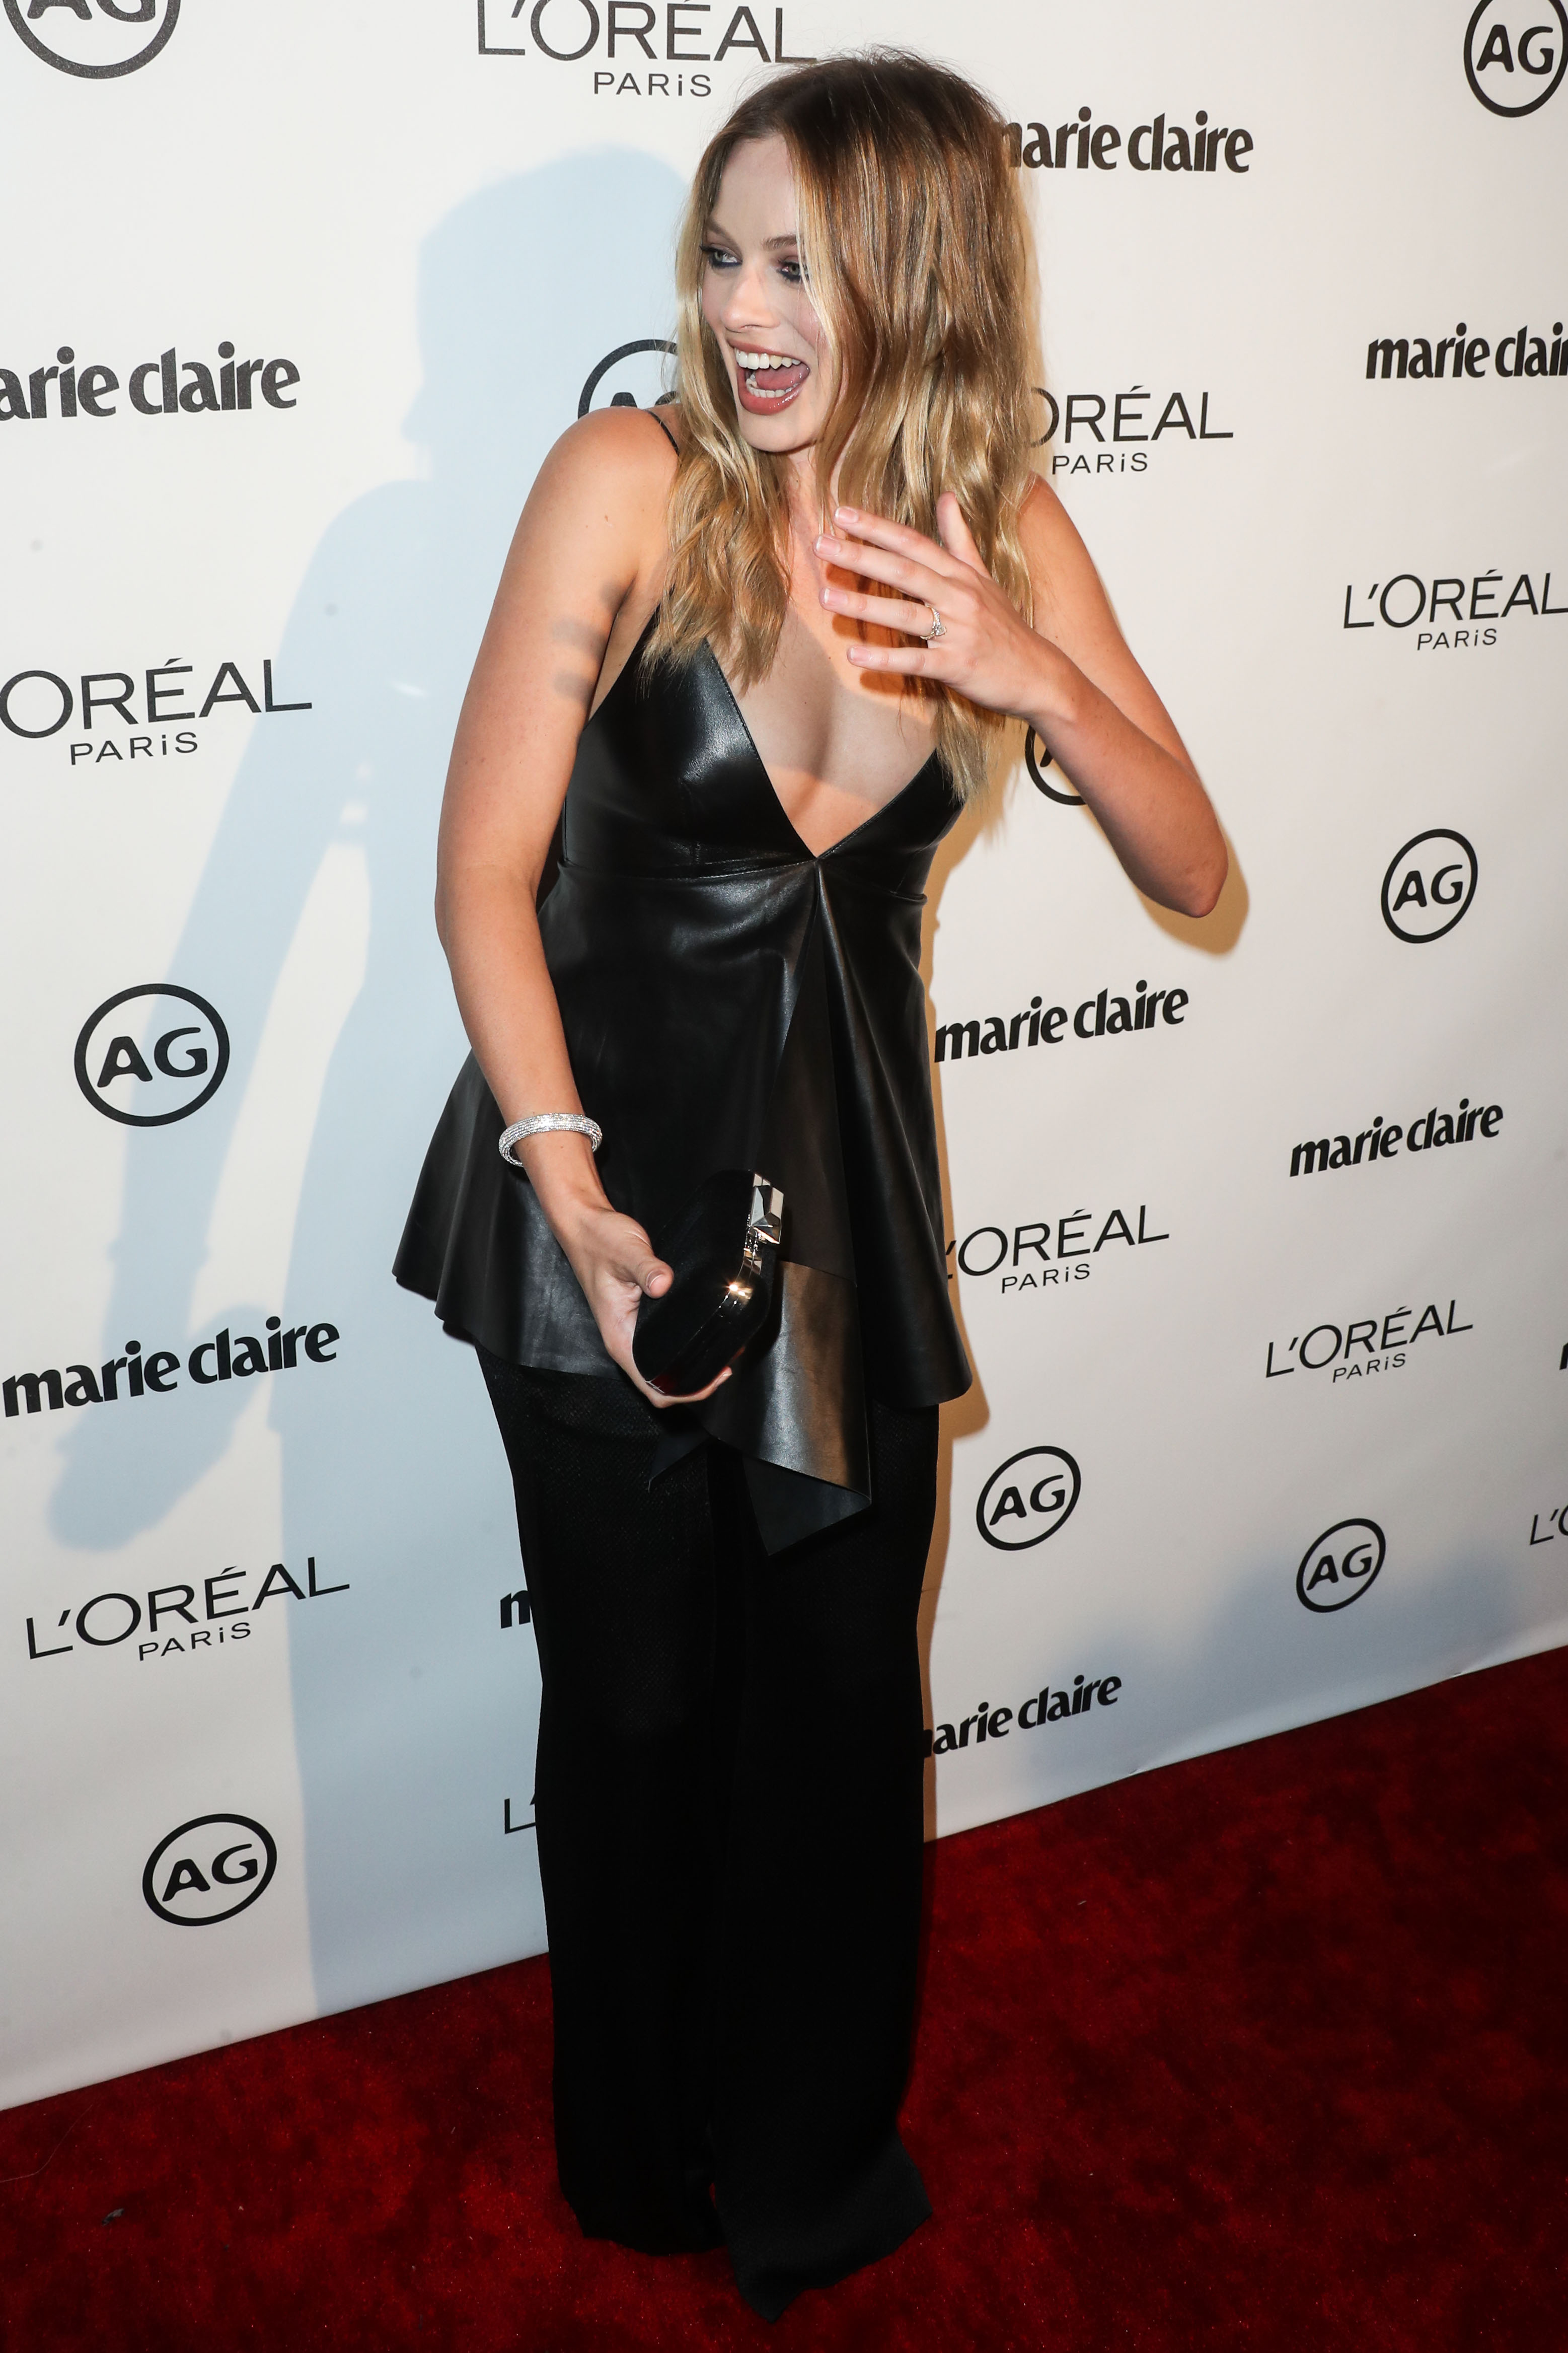 WEST HOLLYWOOD, LOS ANGELES, CA, USA - JANUARY 10: Actress Margot Robbie shows off her wedding ring from Tom Ackerley at Marie Claire's Image Maker Awards 2017 held at Catch LA on January 10, 2017 in West Hollywood, Los Angeles, California, United States. (Photo by Xavier Collin/Image Press Agency/Splash News) <P> Pictured: Margot Robbie <B>Ref: SPL1420296  100117  </B><BR/> Picture by: Xavier Collin/IPA/Splash News<BR/> </P><P> <B>Splash News and Pictures</B><BR/> Los Angeles:310-821-2666<BR/> New York:212-619-2666<BR/> London:870-934-2666<BR/> <span id=